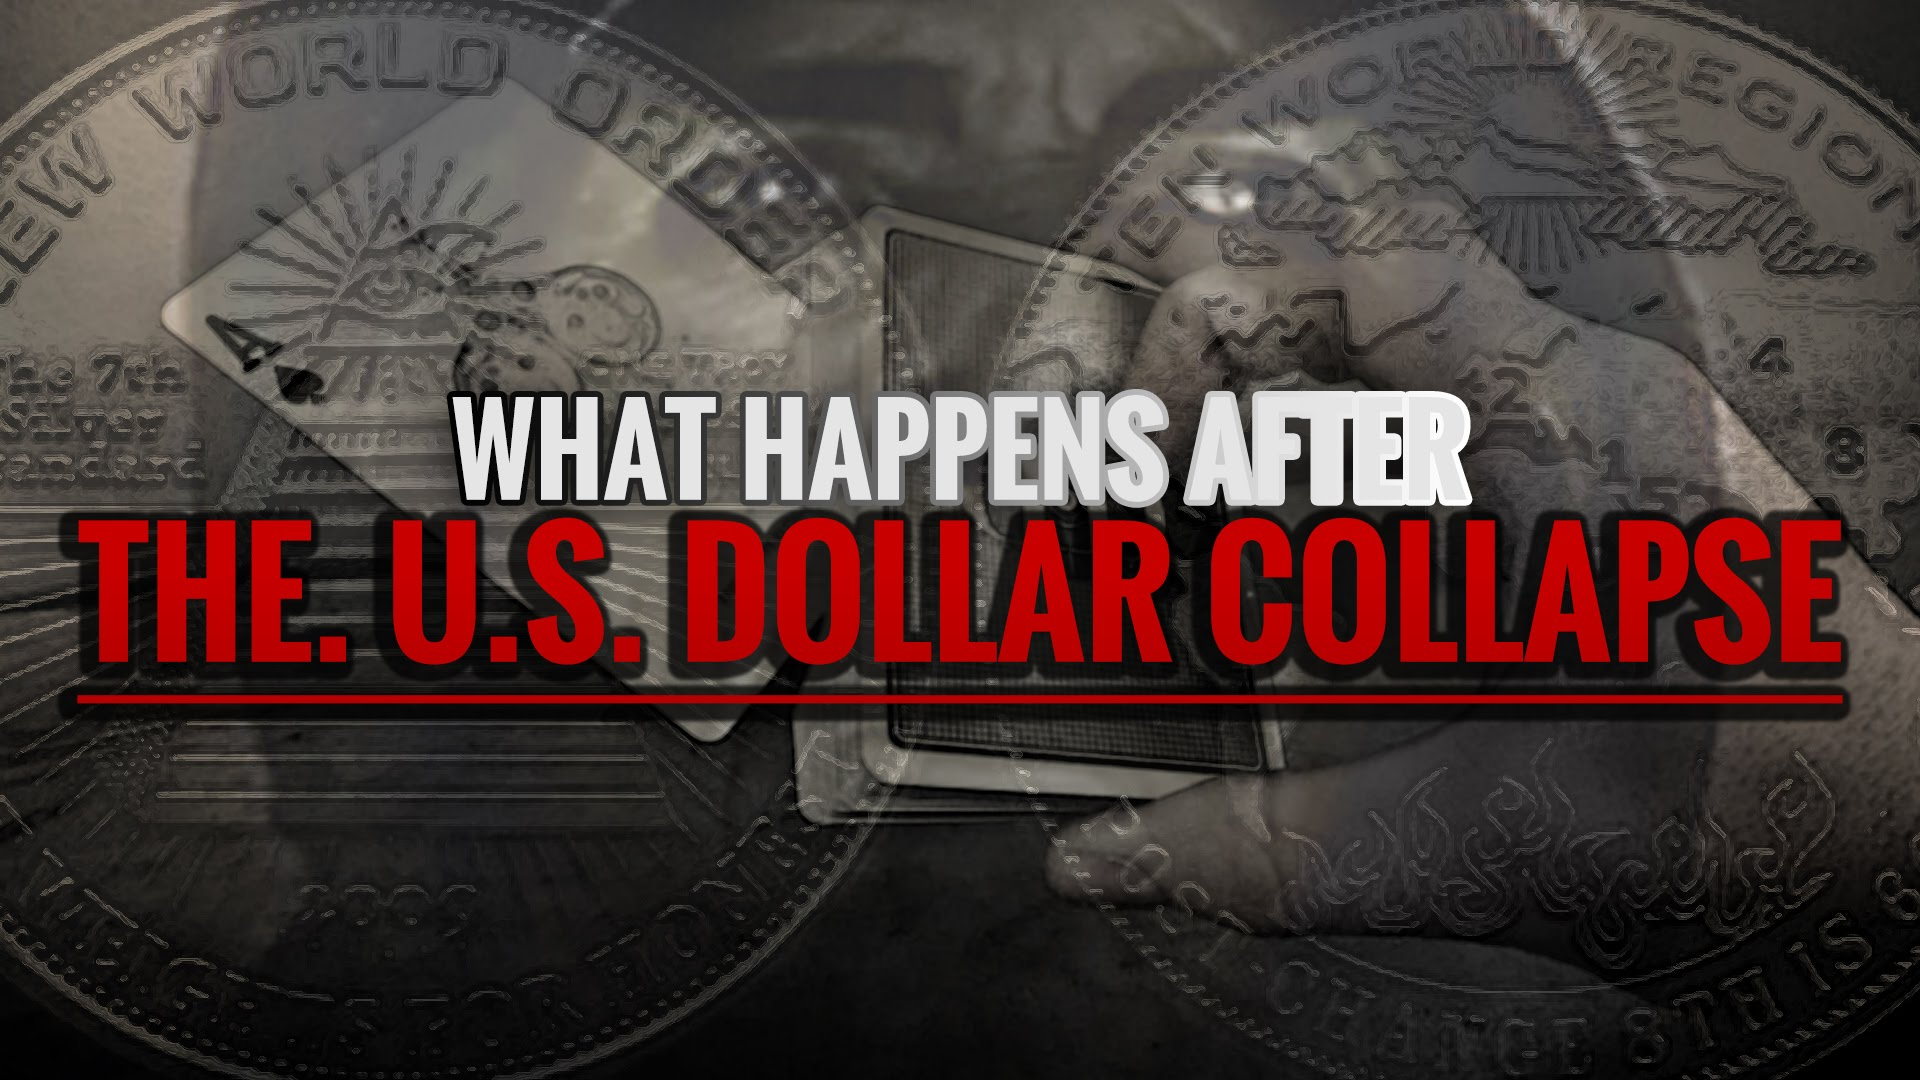 after the dollar collapse